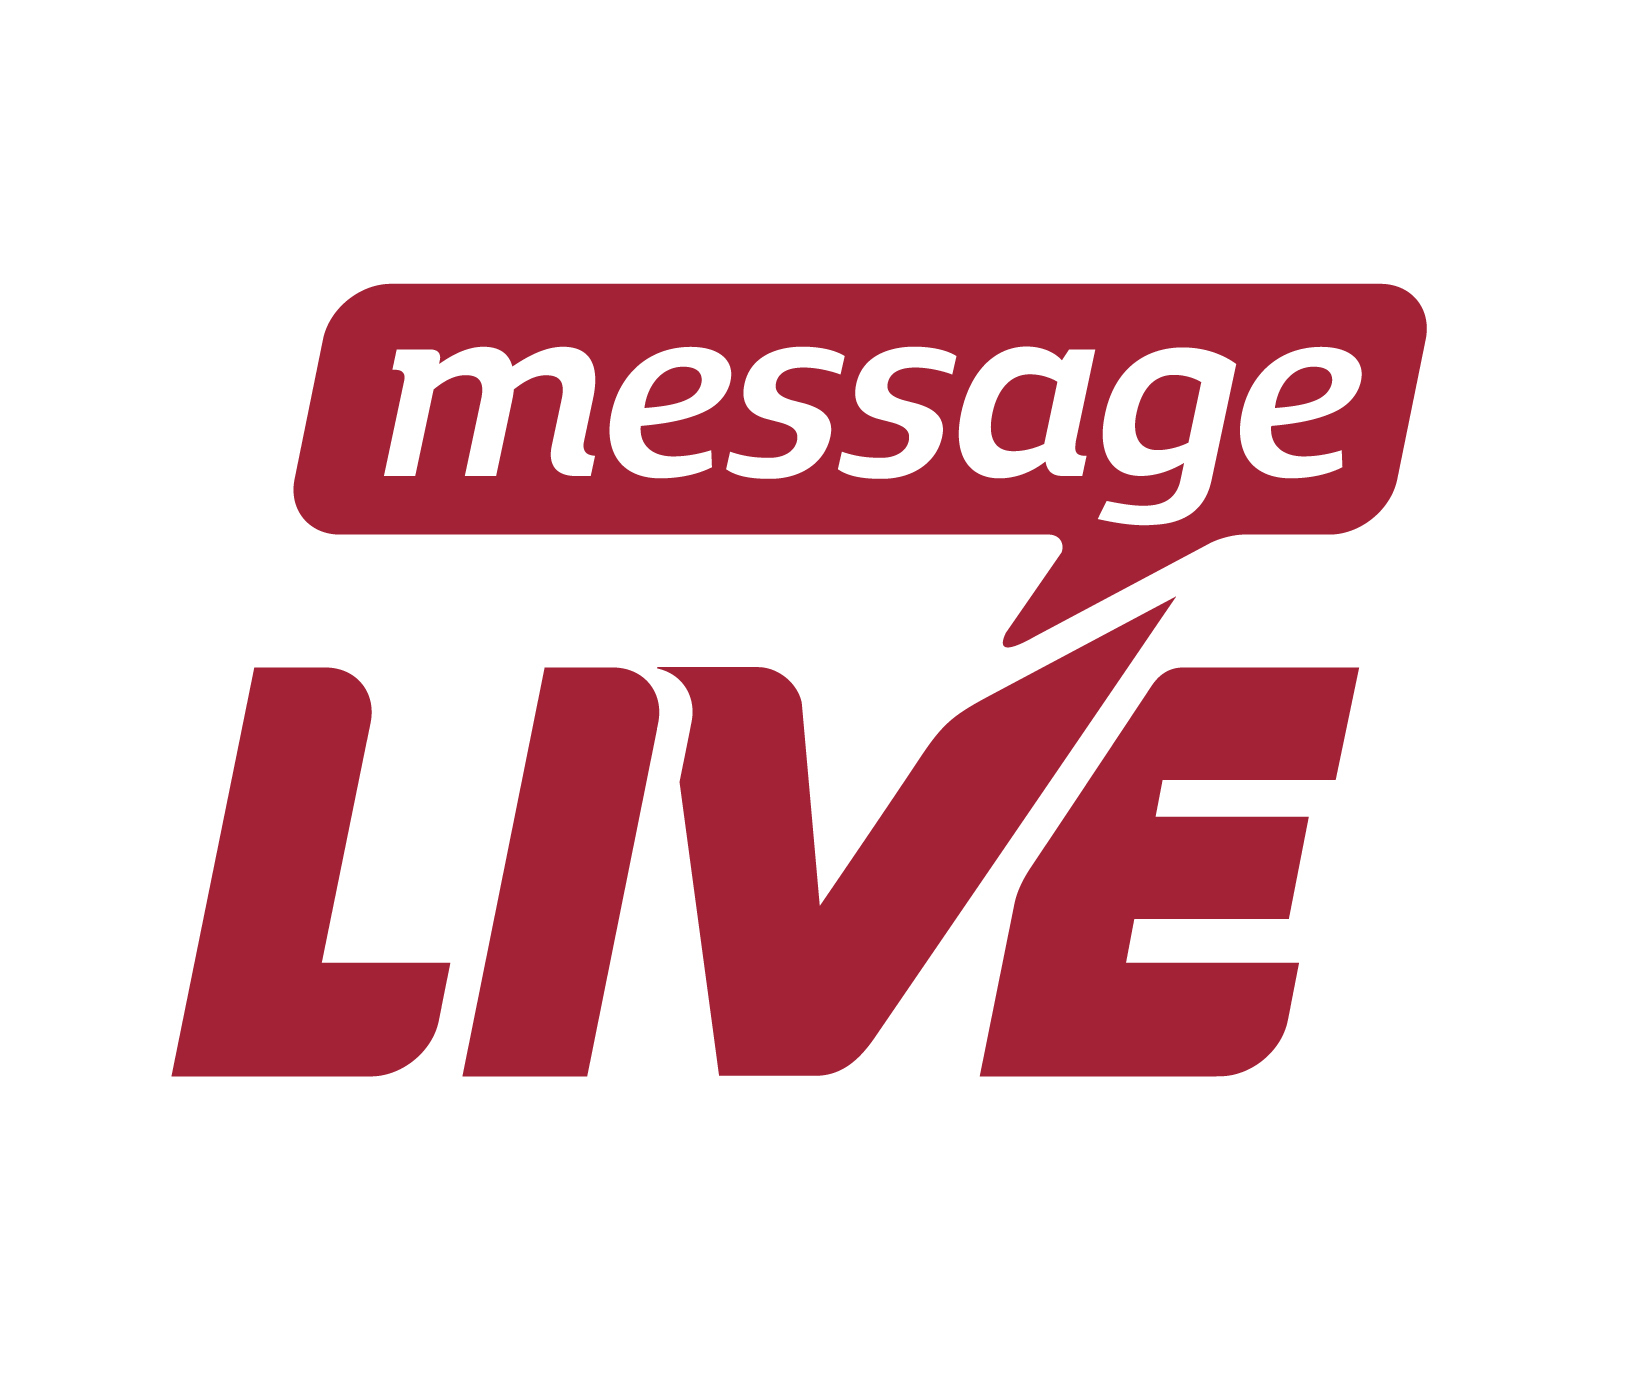 Message Trust Mission Live